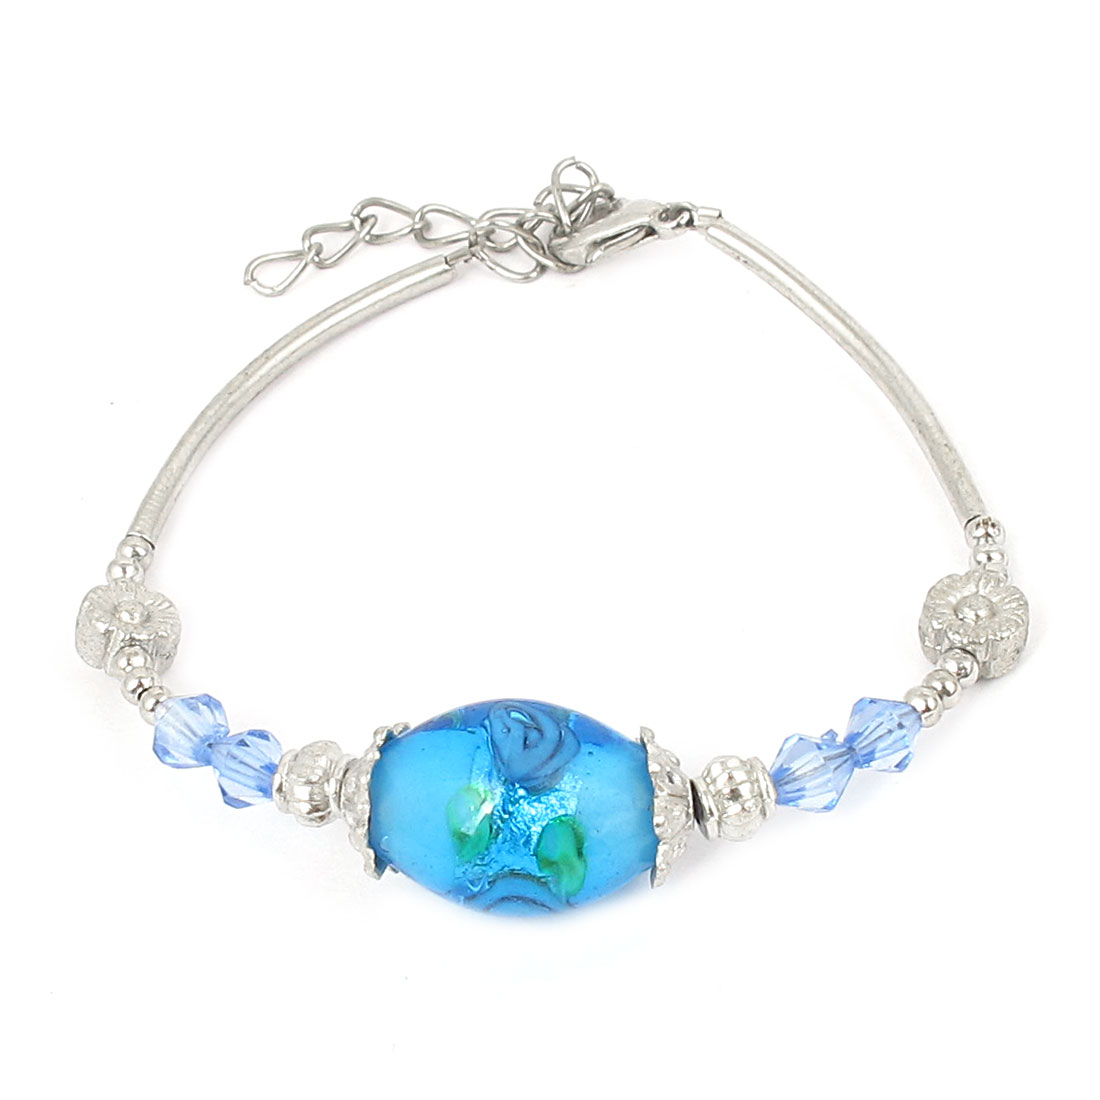 Women Lobster Clasp Link Oval Bead Detail Wrist Decoration Bracelet Bangle Light Blue